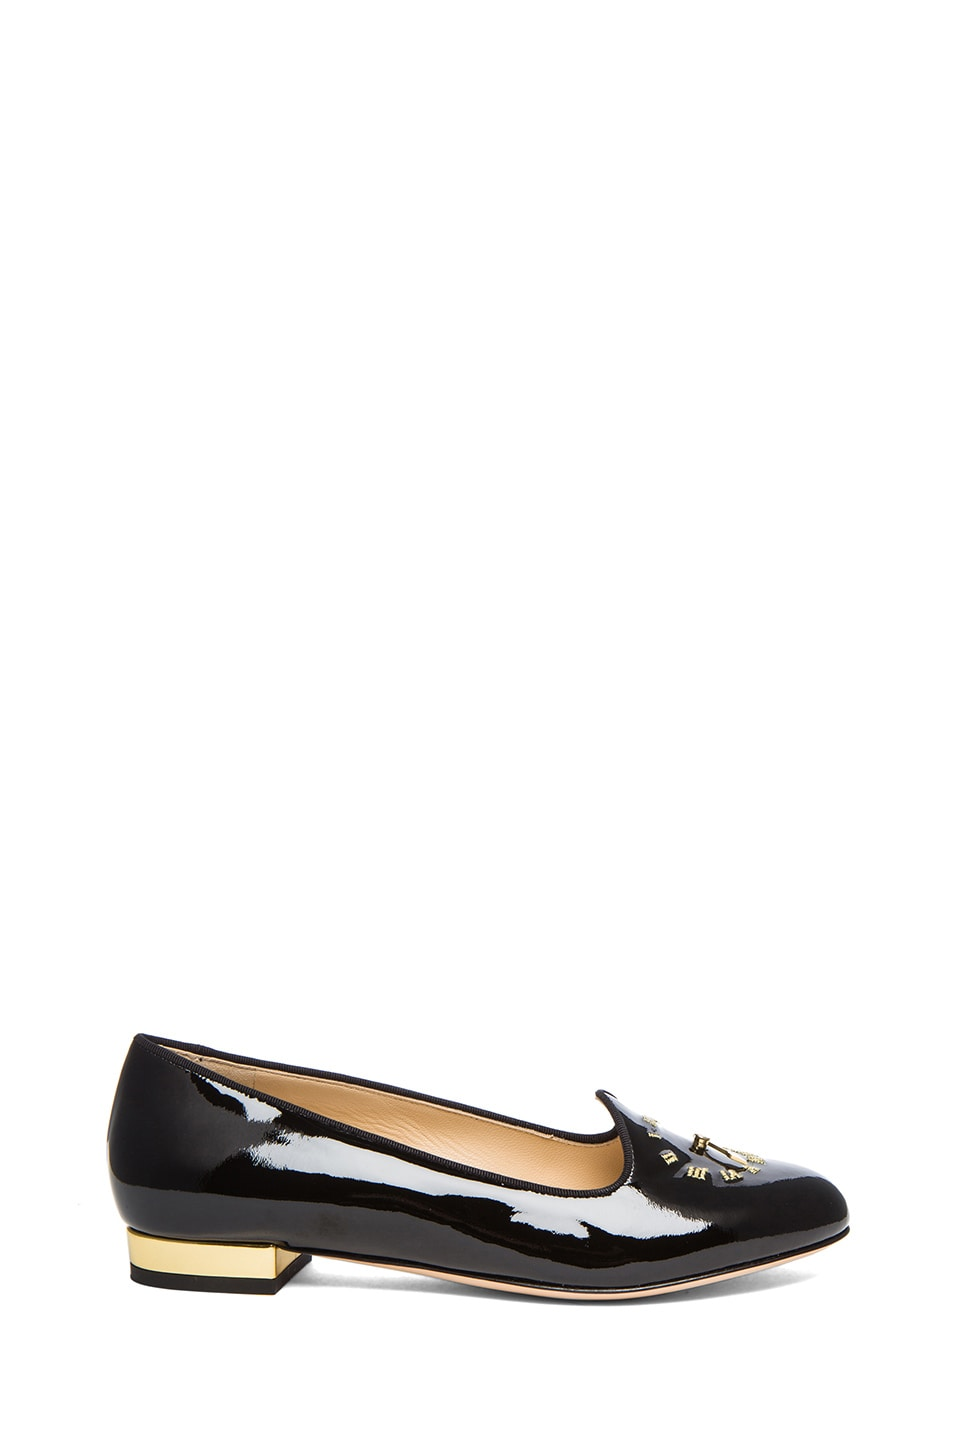 Image 1 of Charlotte Olympia Fashionably Late Patent Leather Flats in Black